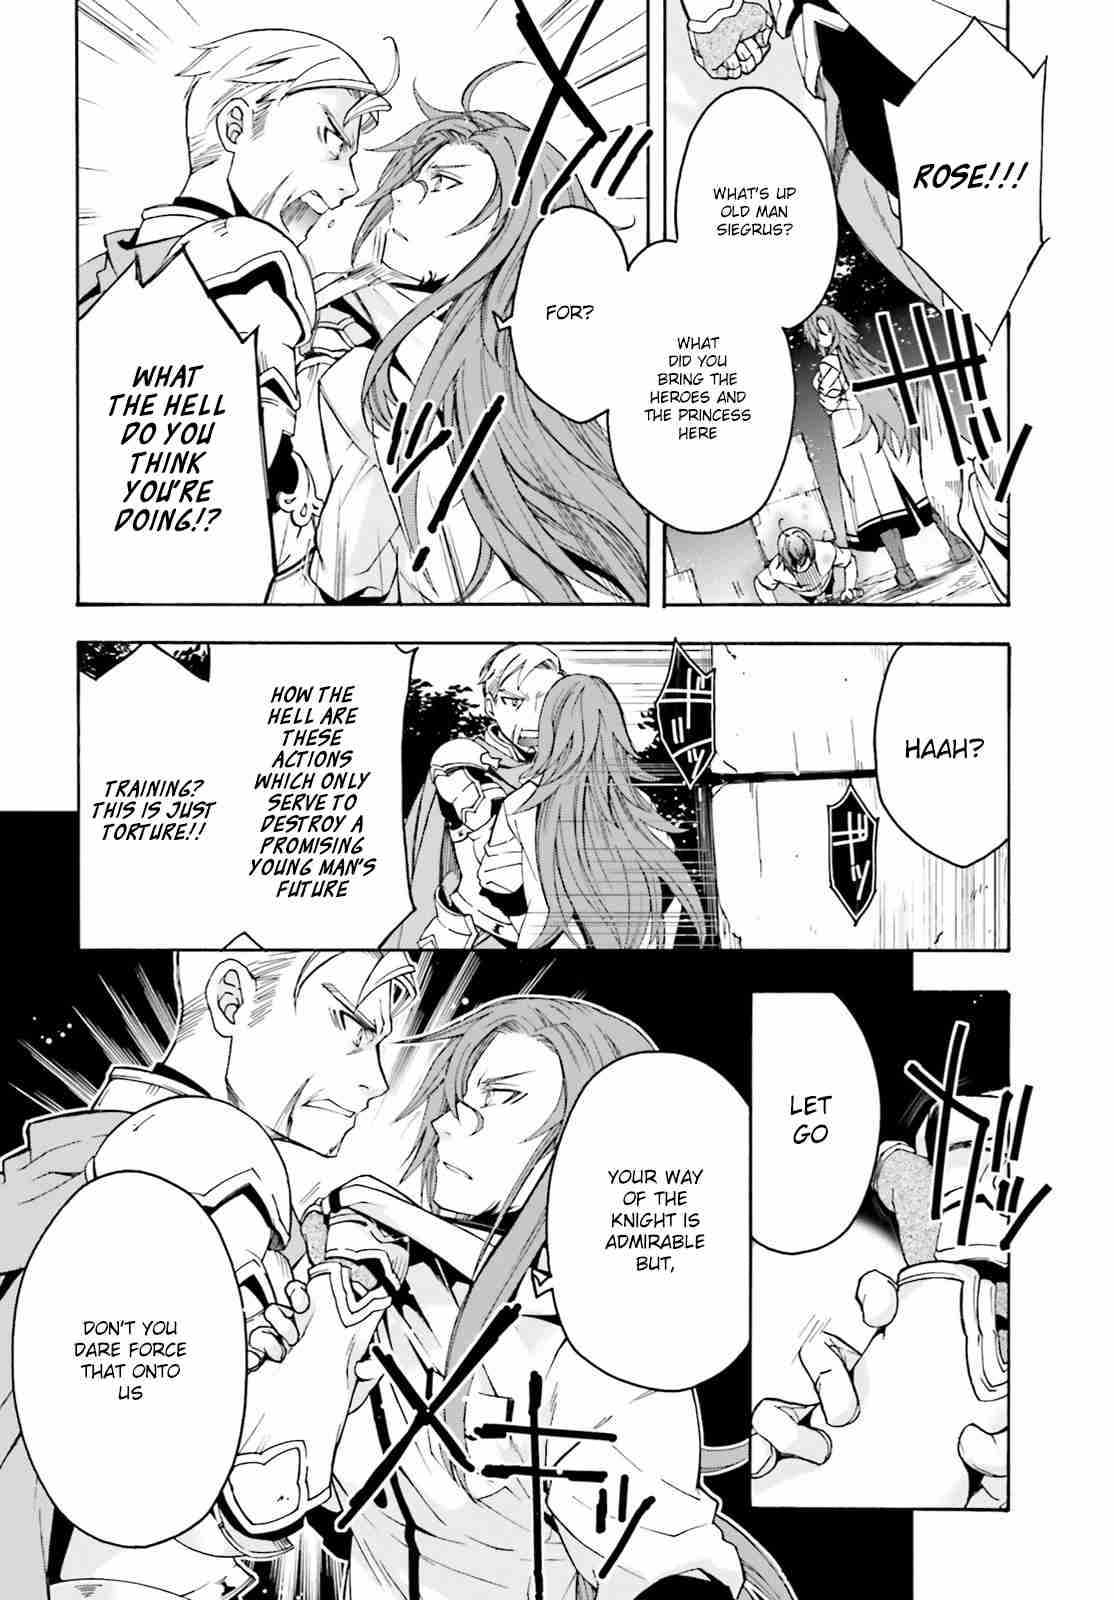 The Wrong Way To Use Healing Magic Ch 2 The Wrong Way To Use Healing Magic Ch 2 Page 19 Nine Anime Rose teaches him how to coat his fists with healing magic, so he can pummel a guy into unconsciousness without leaving any visible injury, though the force of the punch itself is still an issue. nineanime